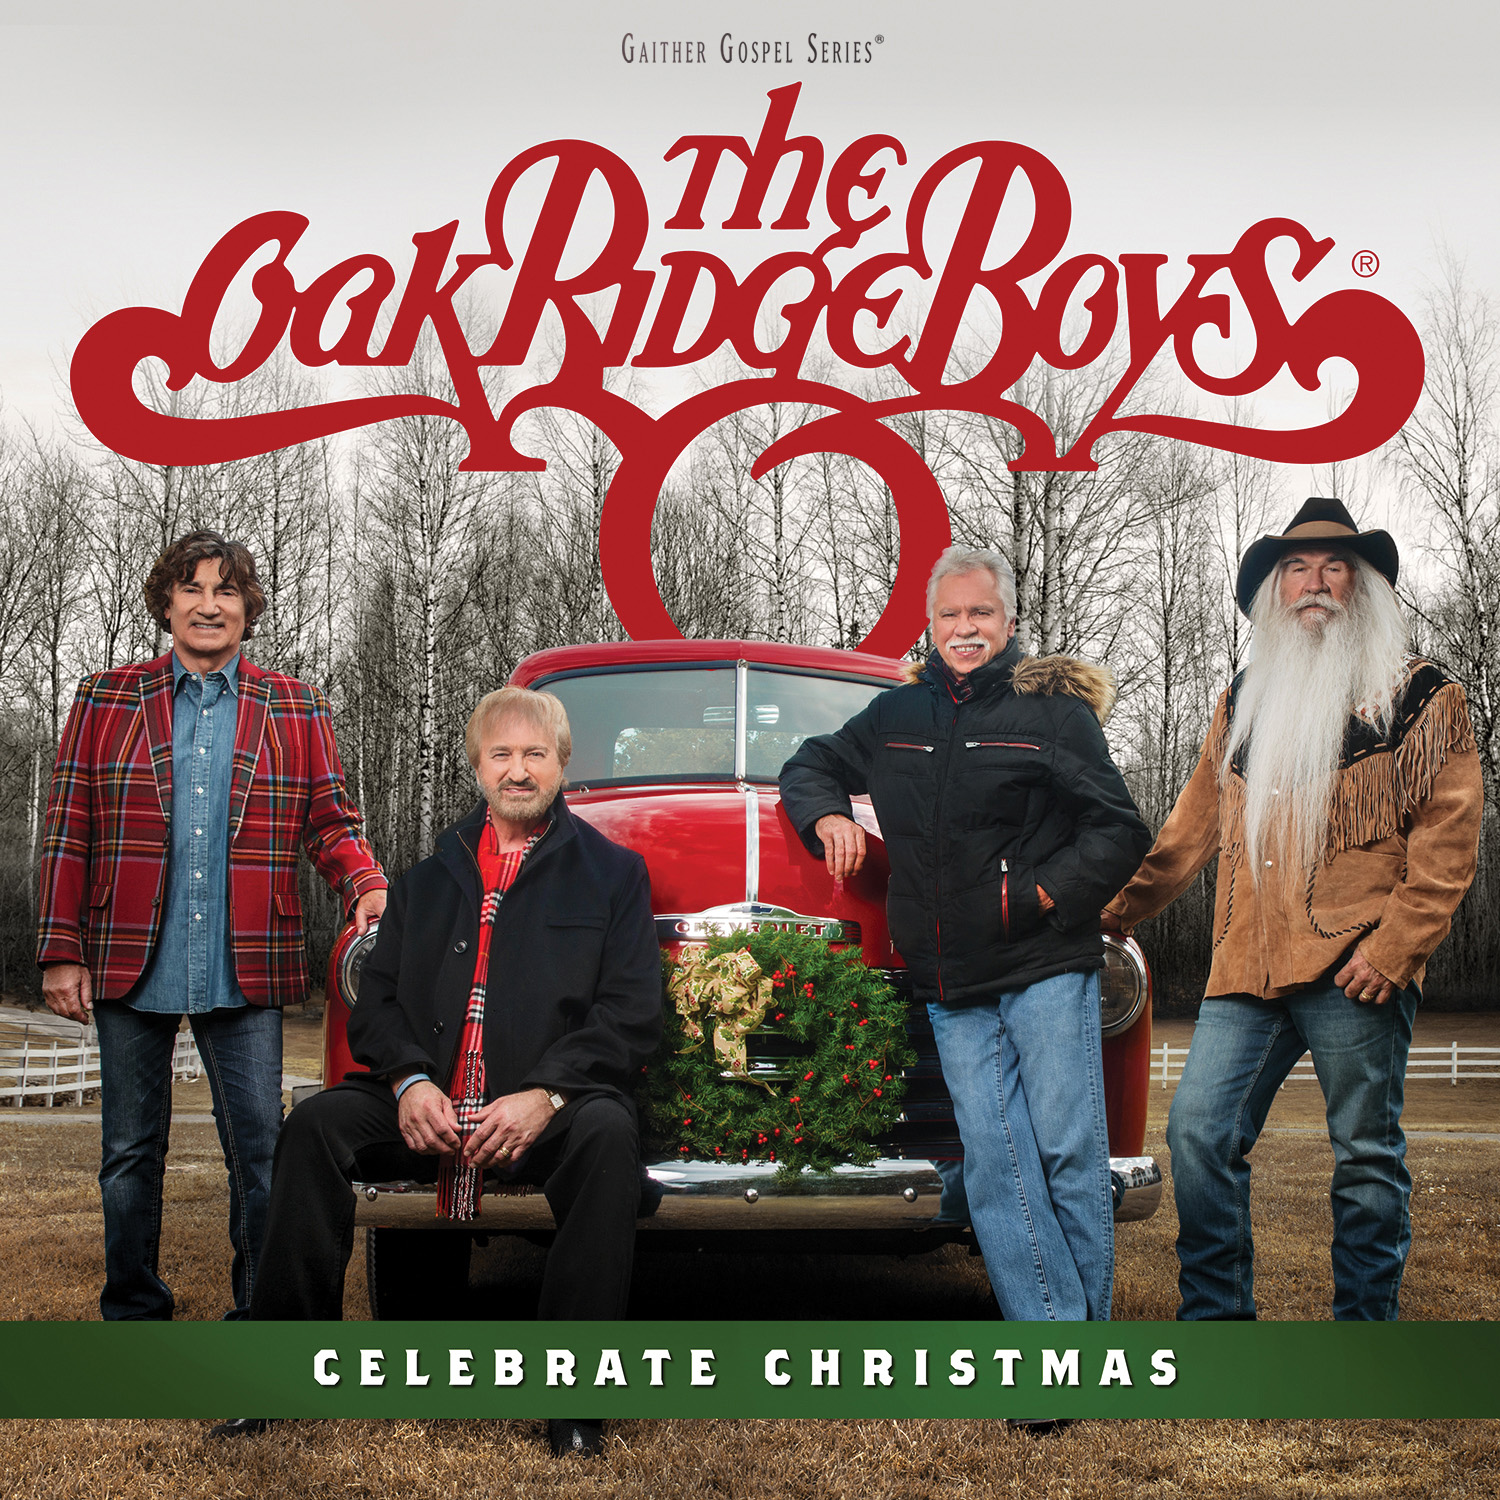 The Oak Ridge Boys 'Celebrate Christmas' available at Cracker Barrel® Old Country Store locations